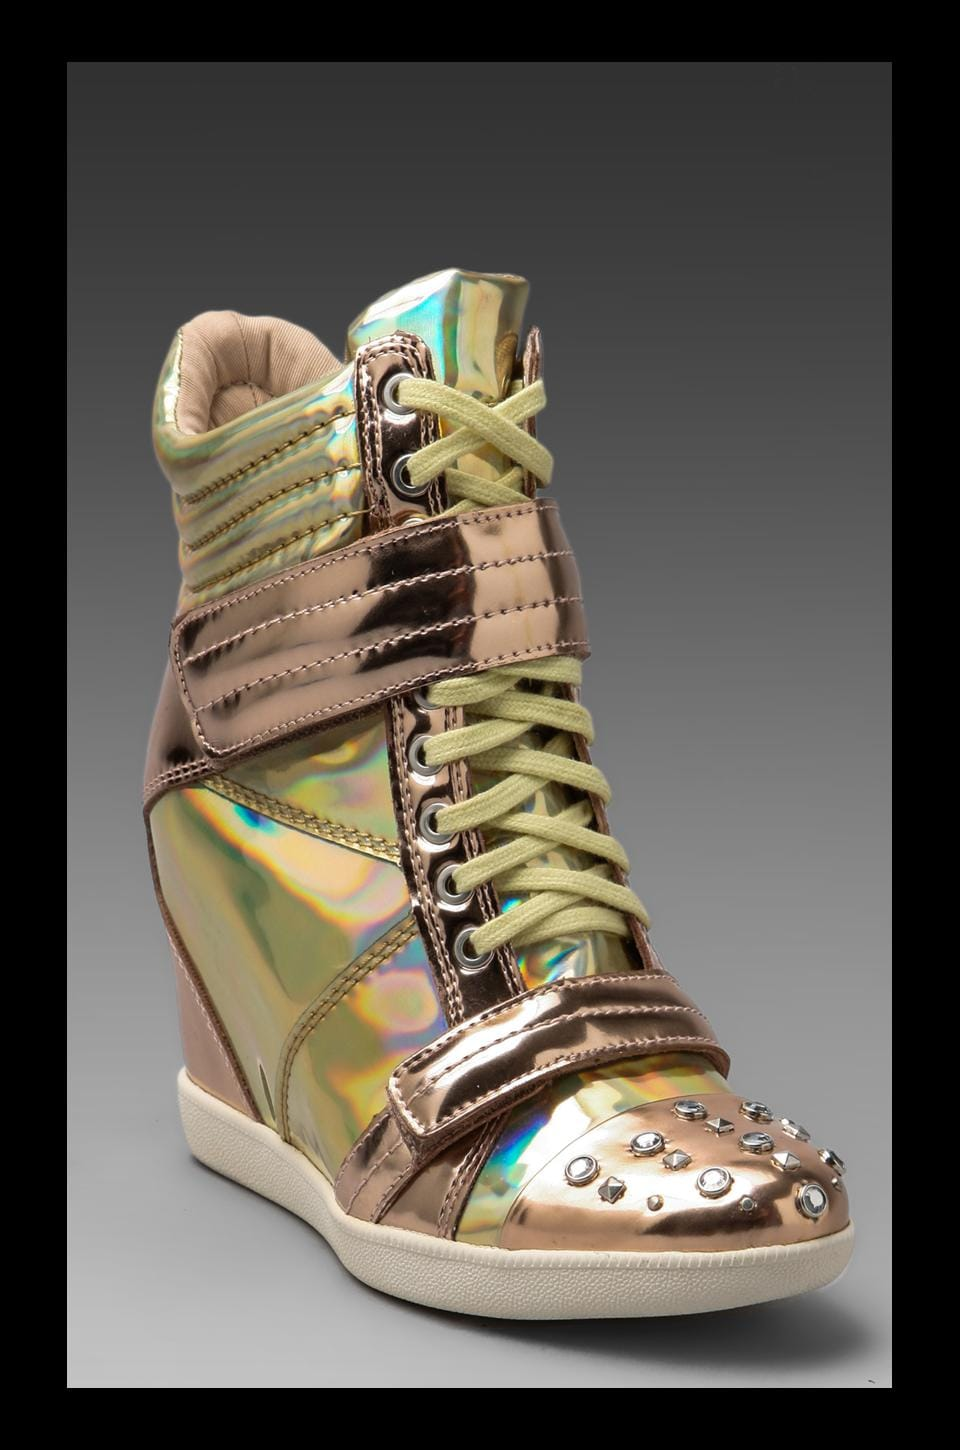 Boutique 9 Nevan Wedge Sneaker in Gold Hologram